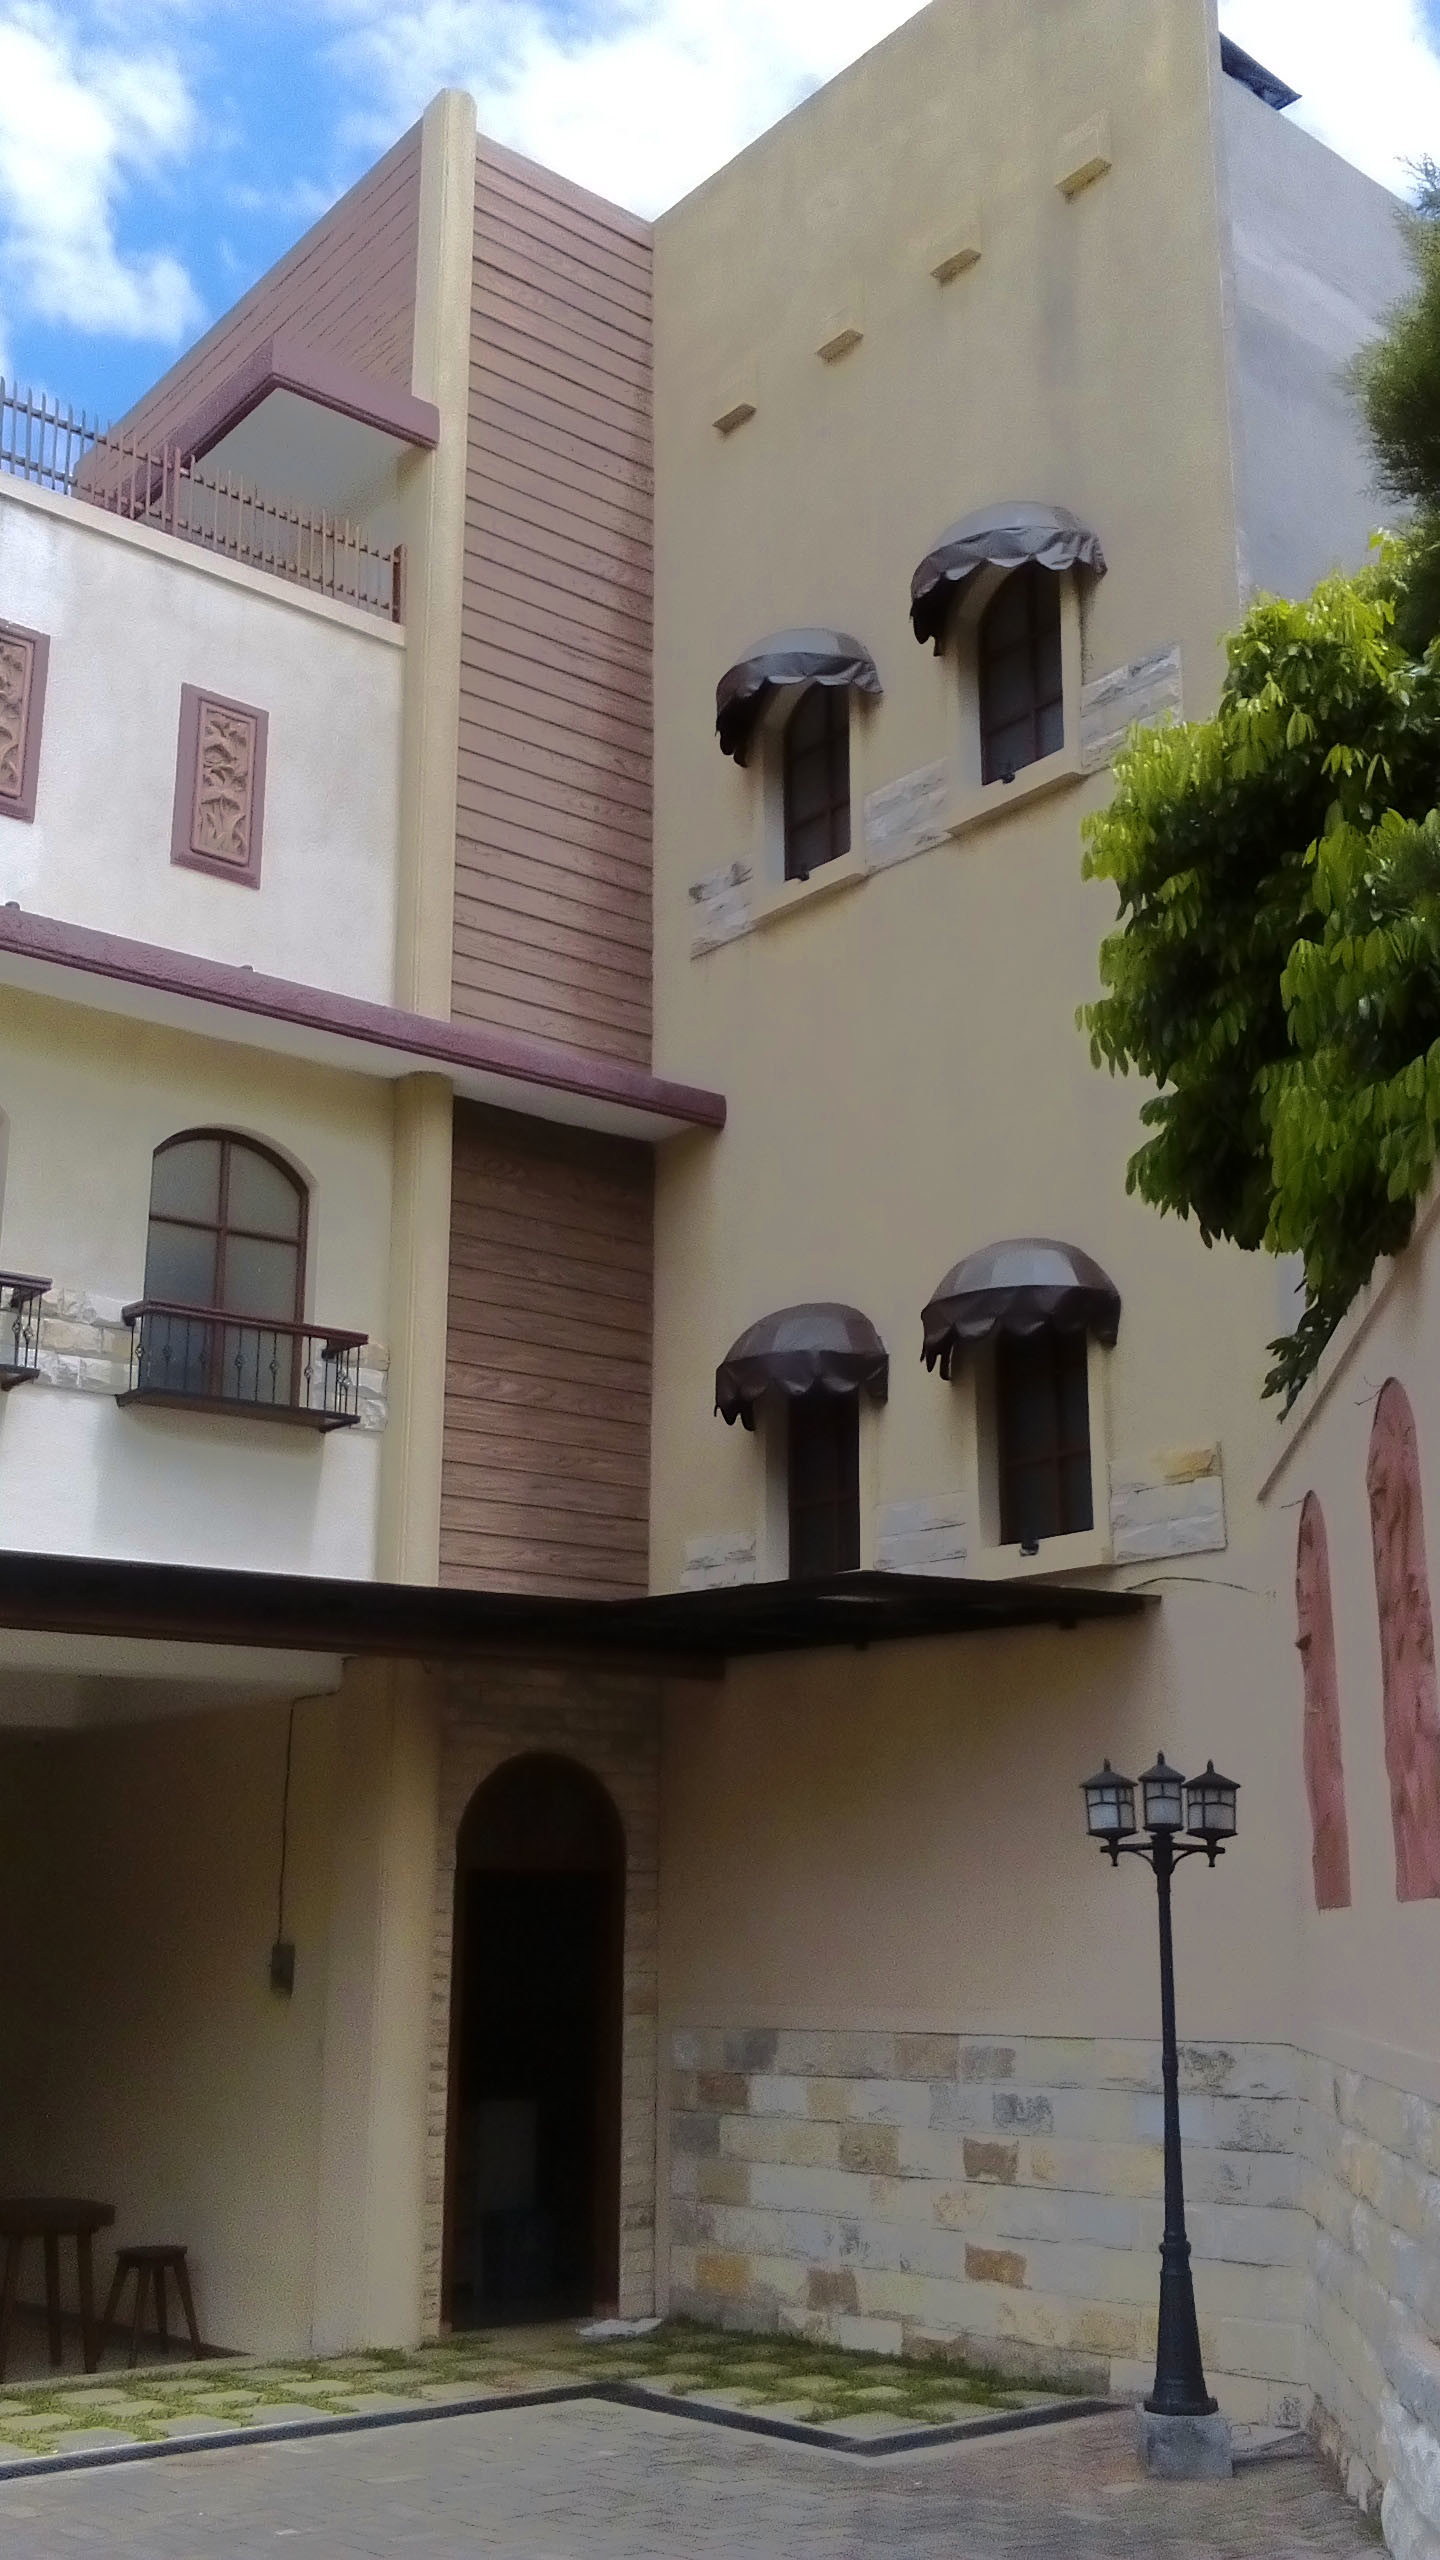 A Women S Boarding House With Californian Style Architecture In Malang East Java Indonesia Rent Studios Malang